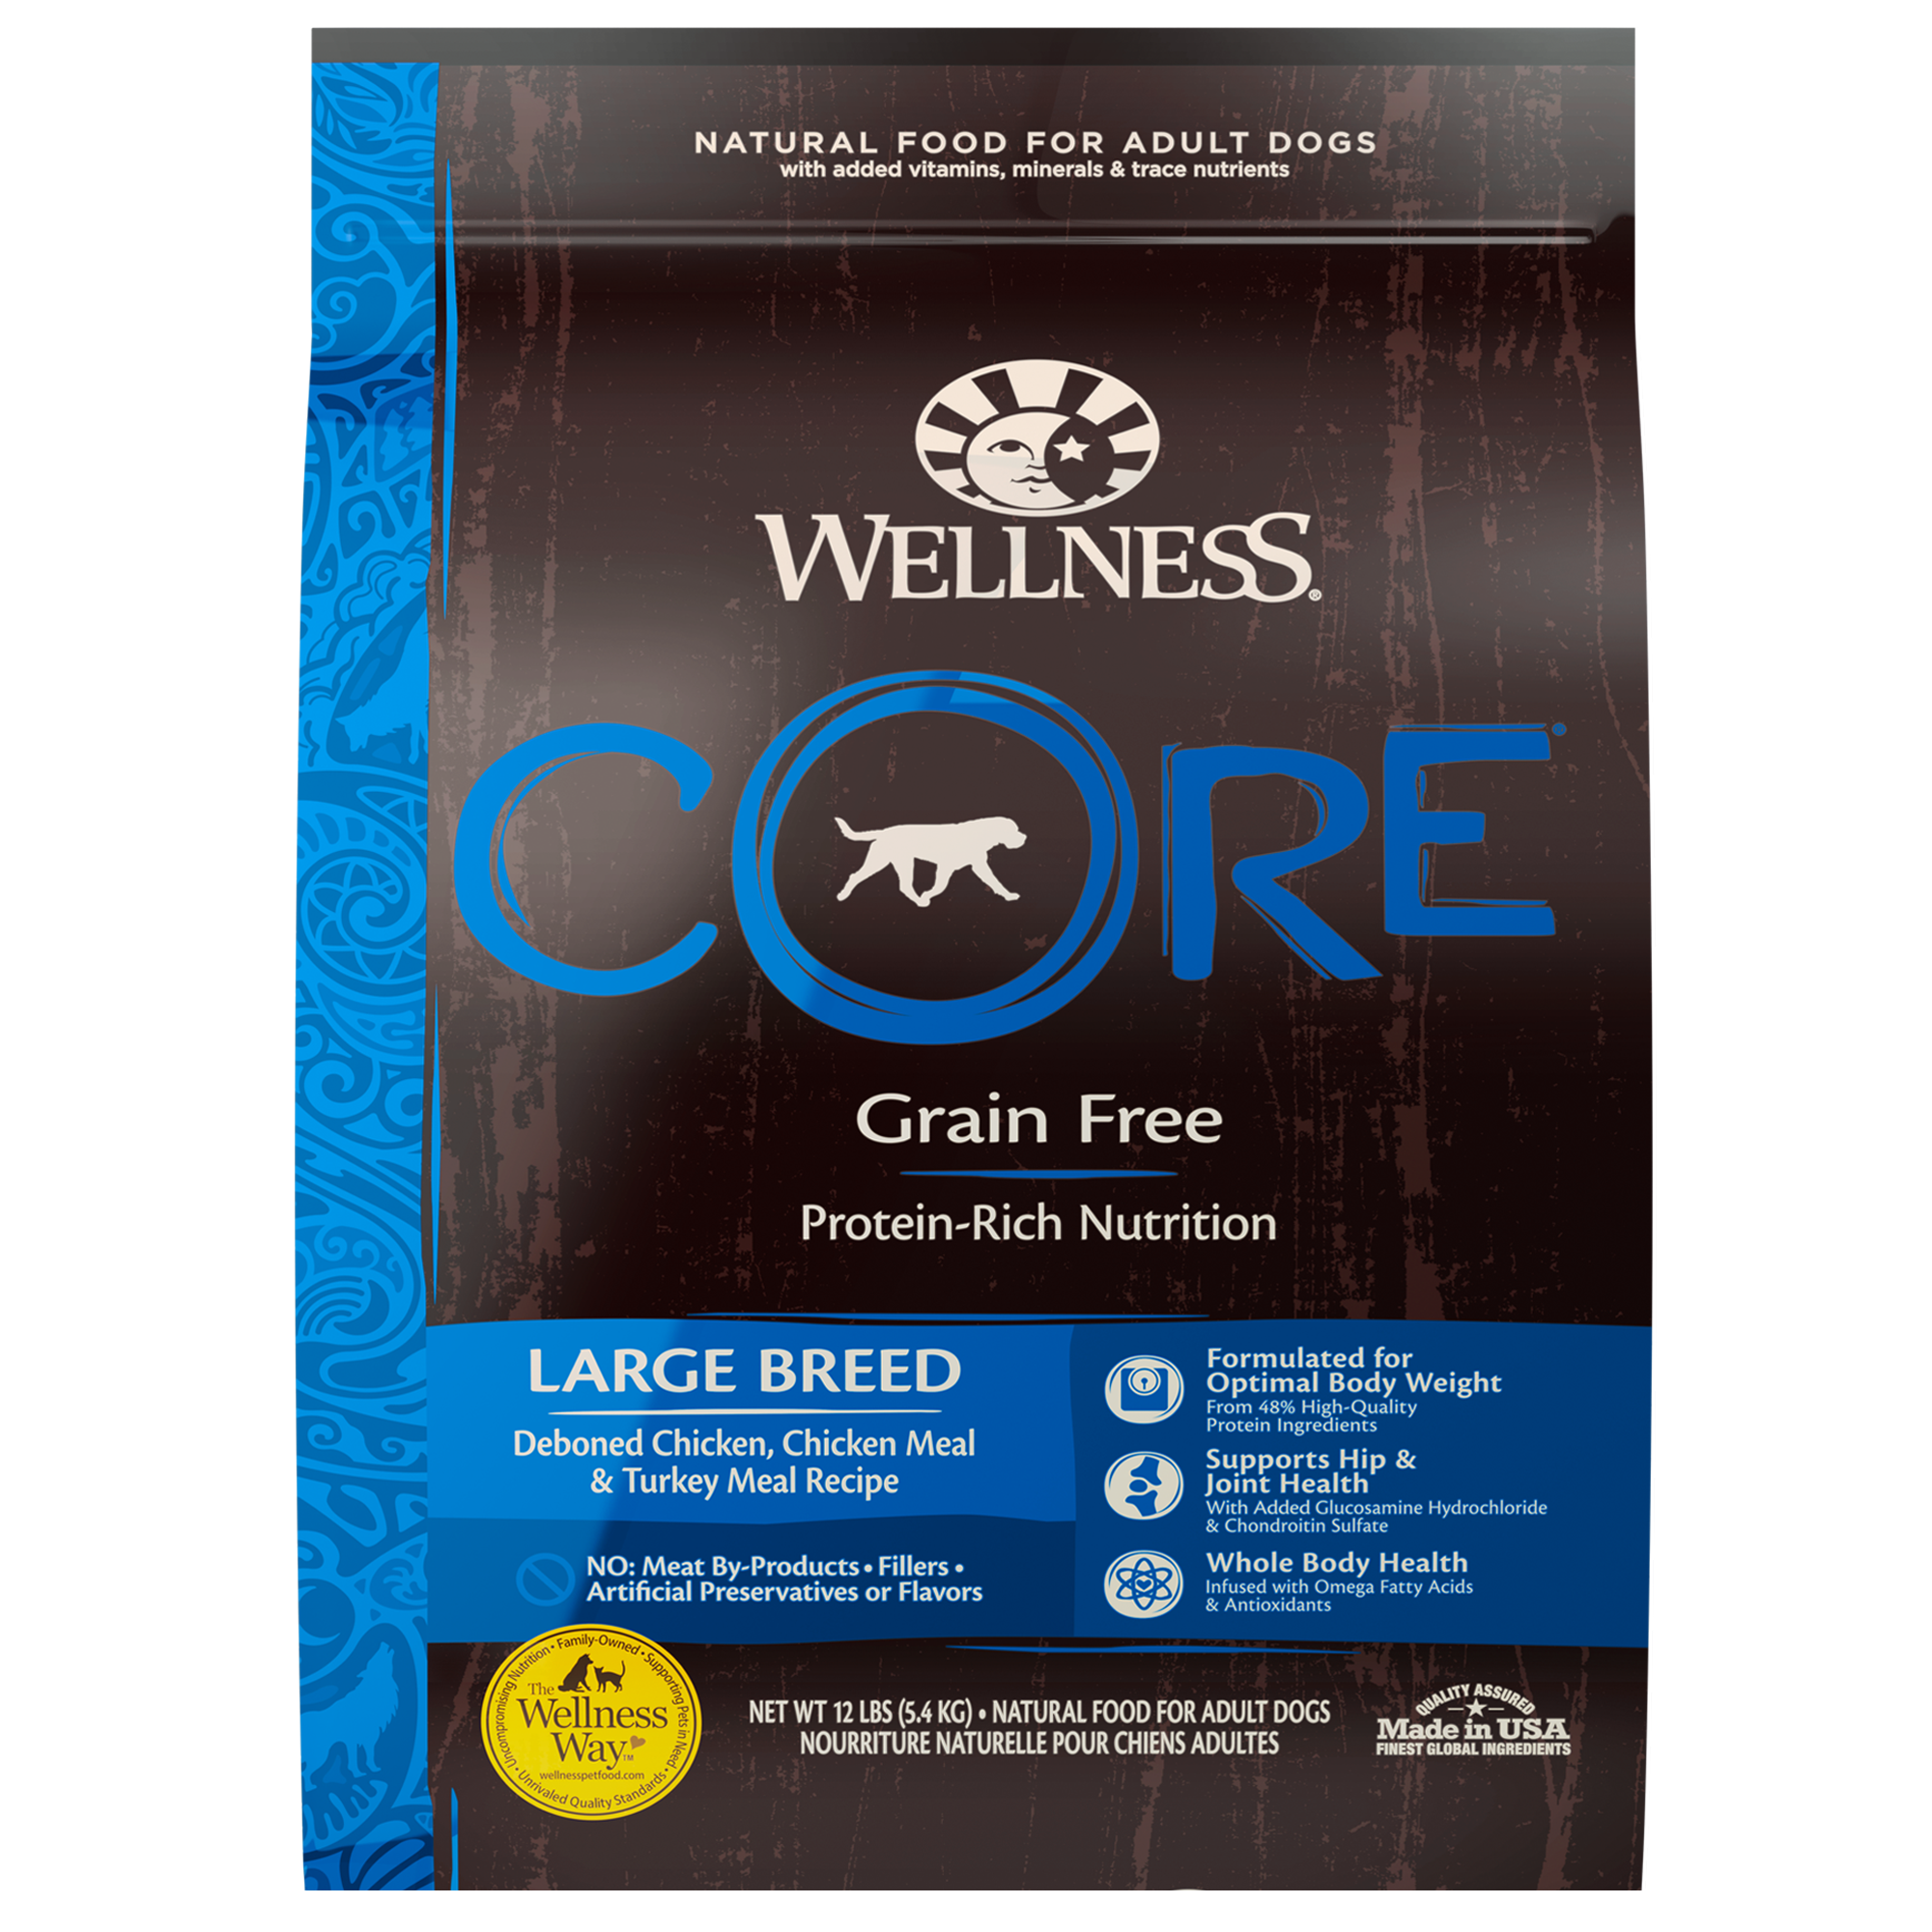 Core Large Breed Large Breed Wellness Pet Food